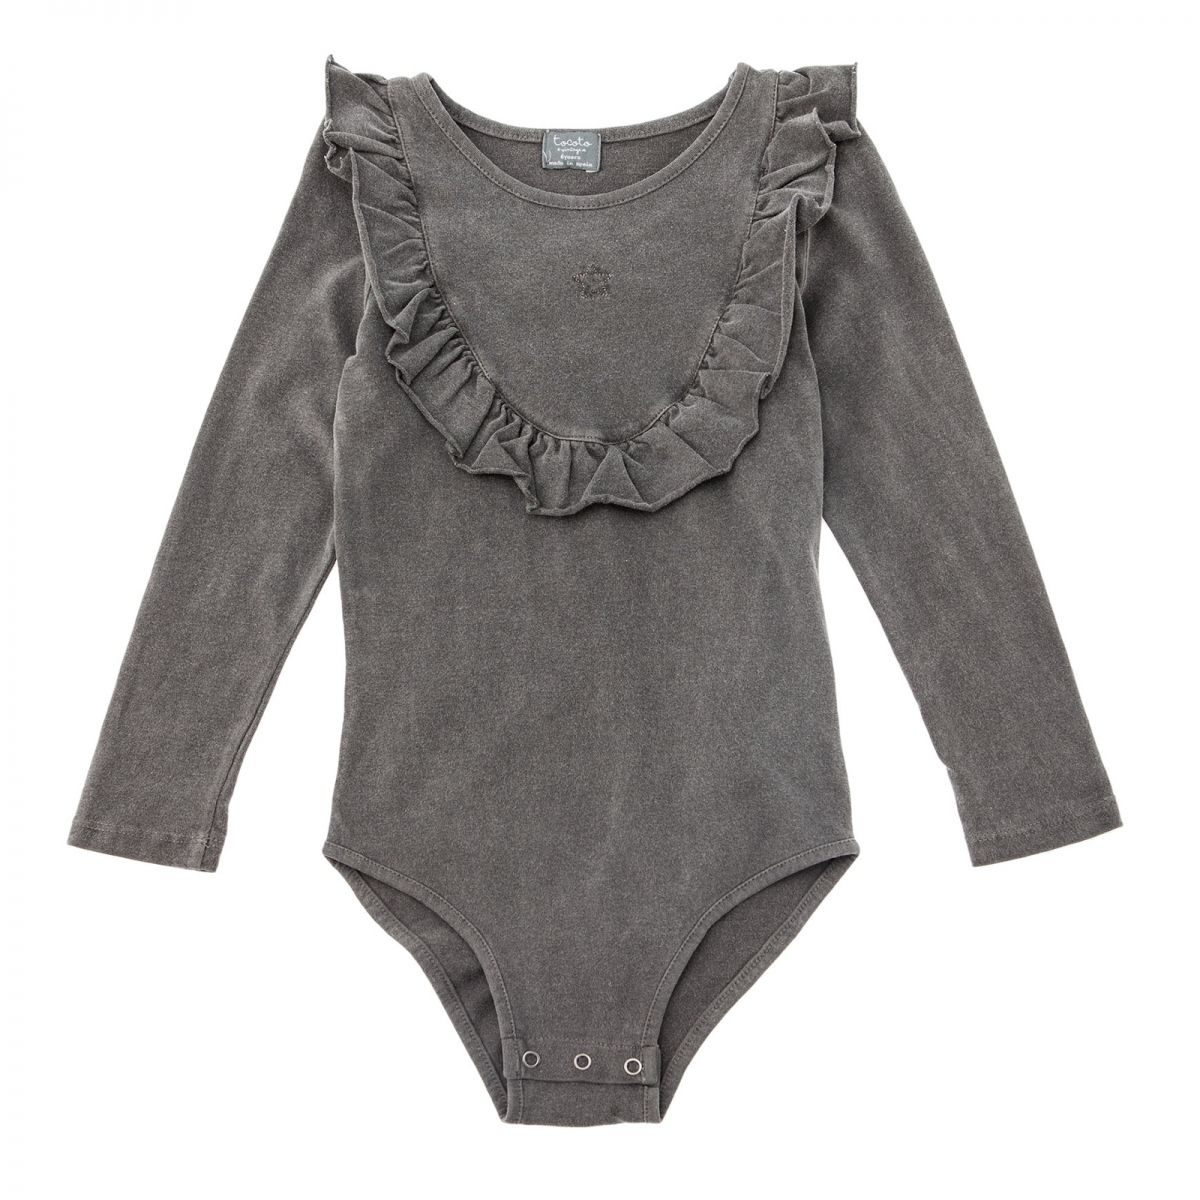 Tocoto Vintage - Jersey body with frill grey - 1